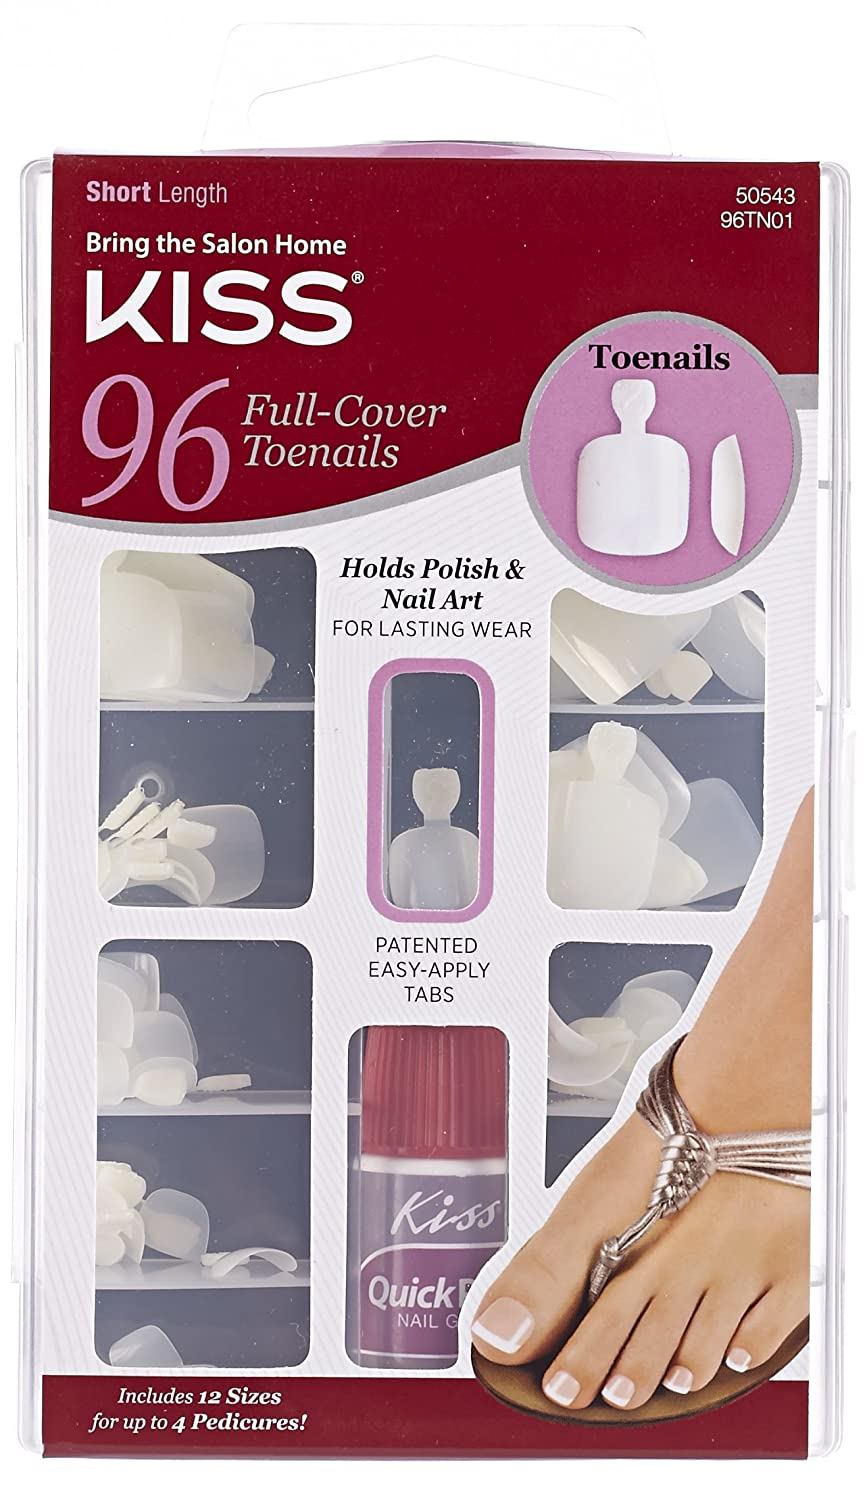 Kiss Products 96 Full Cover Toenails, 0.2 Pound INC. 96TN01